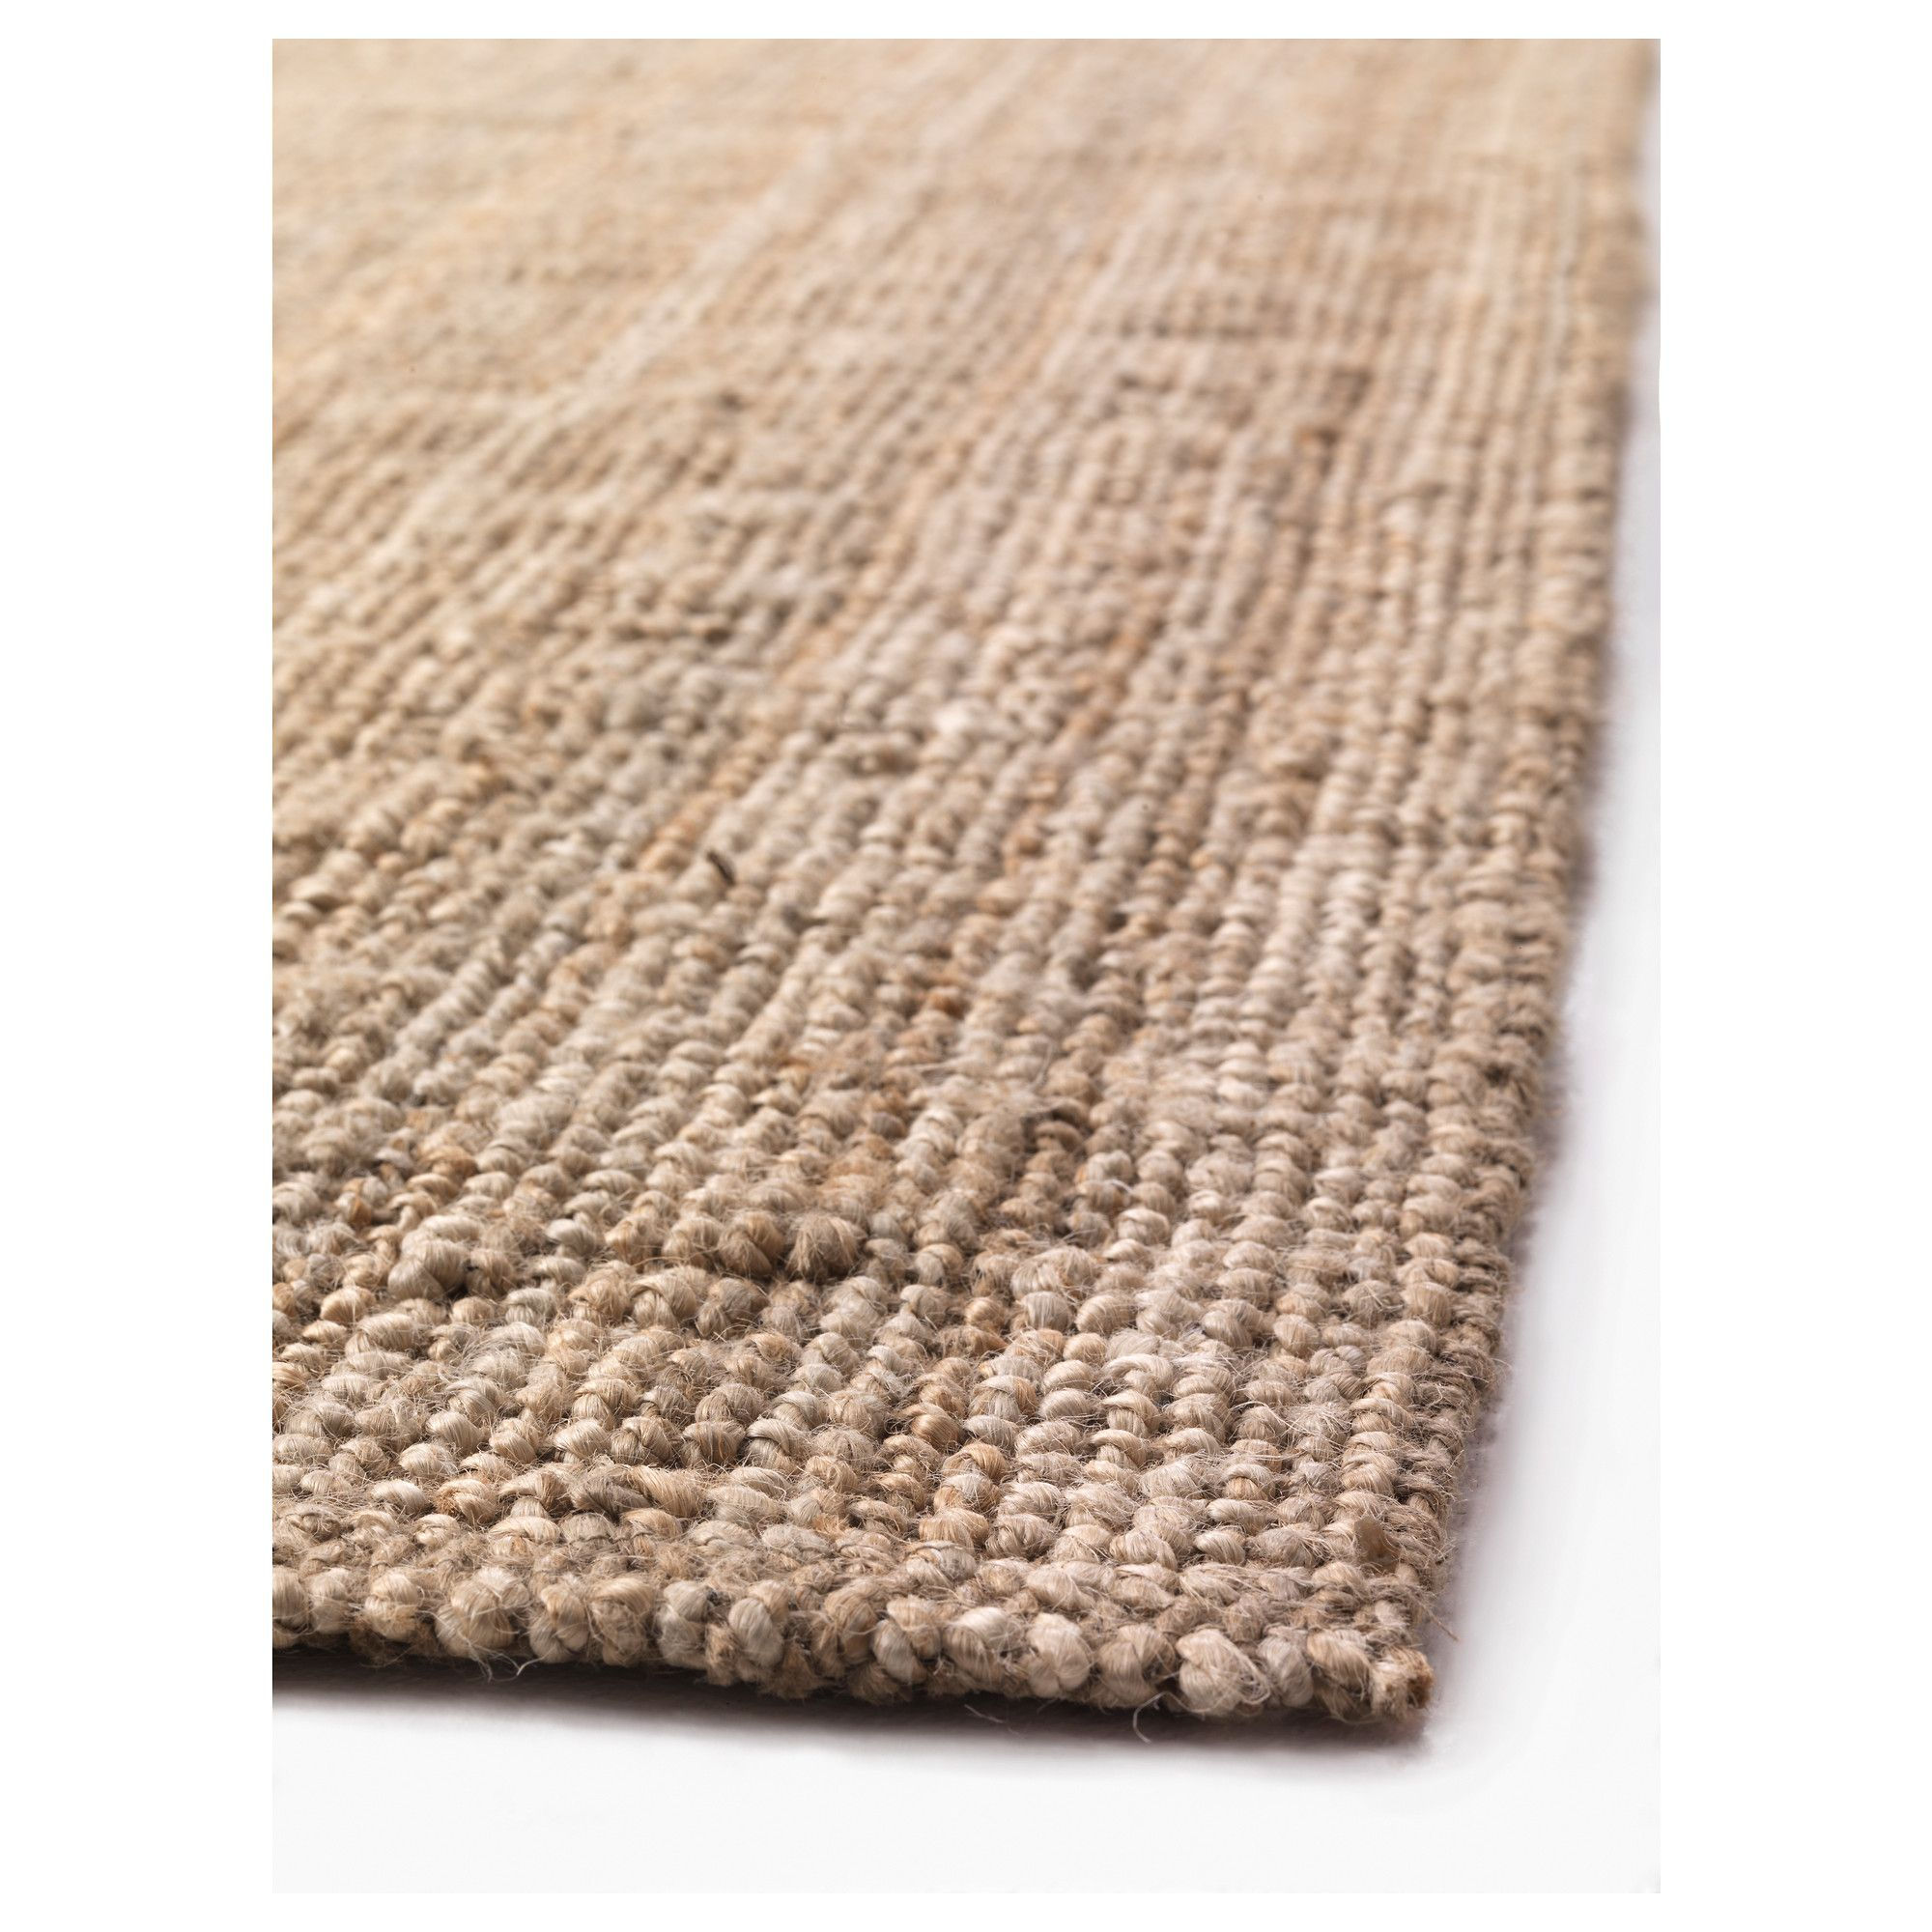 Ikea Teppich Nipprig Lohals Rug Flatwoven Natural Home Is Where The Heart Is Ikea